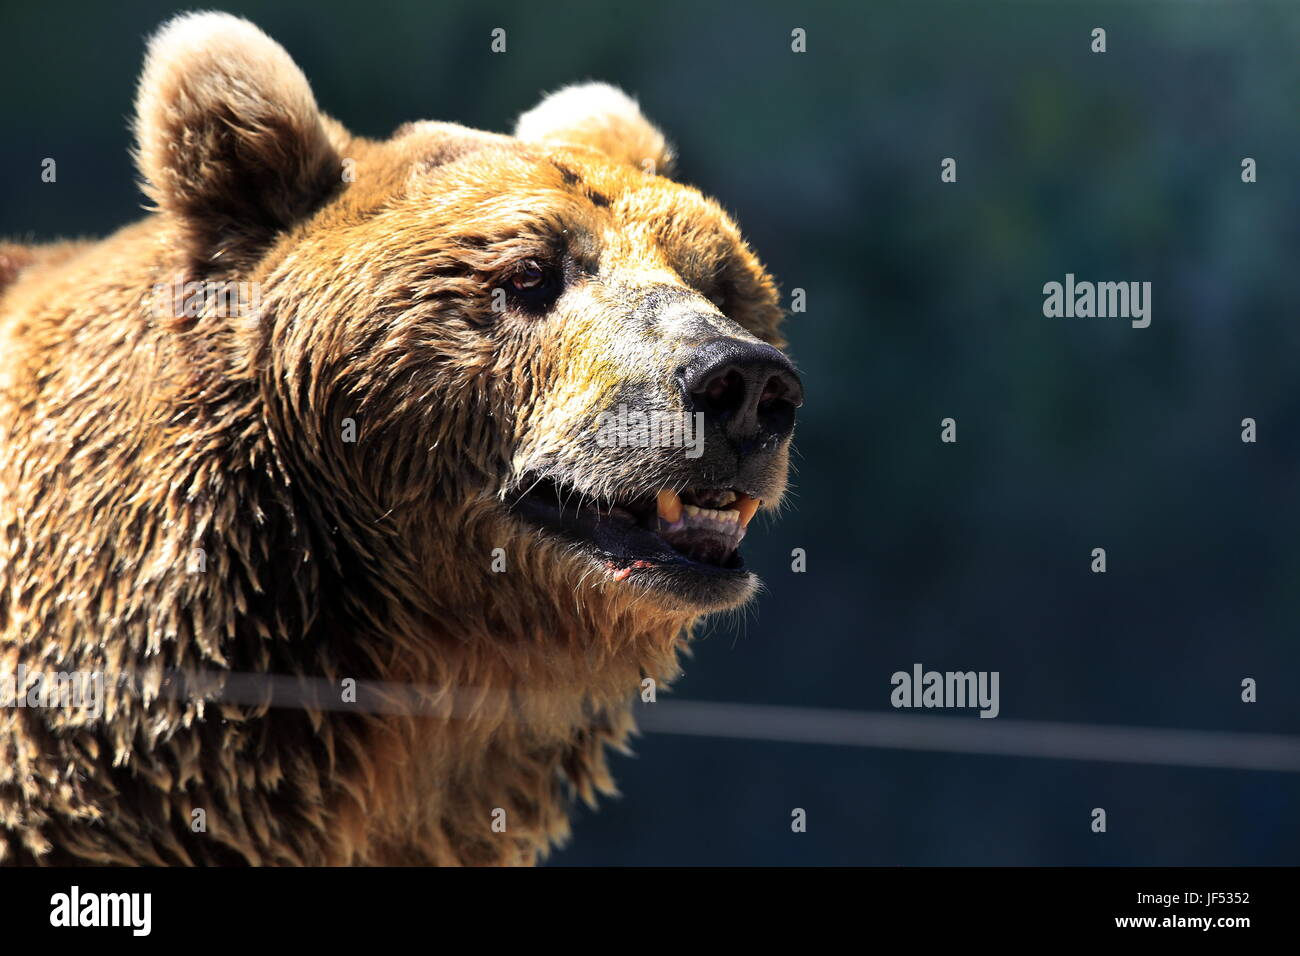 ROSTOV-ON-DON, RUSSIA – JUNE 28, 2017: A brown bear at the Rostov-on-Don Zoo. Valery Matytsin/TASS - Stock Image